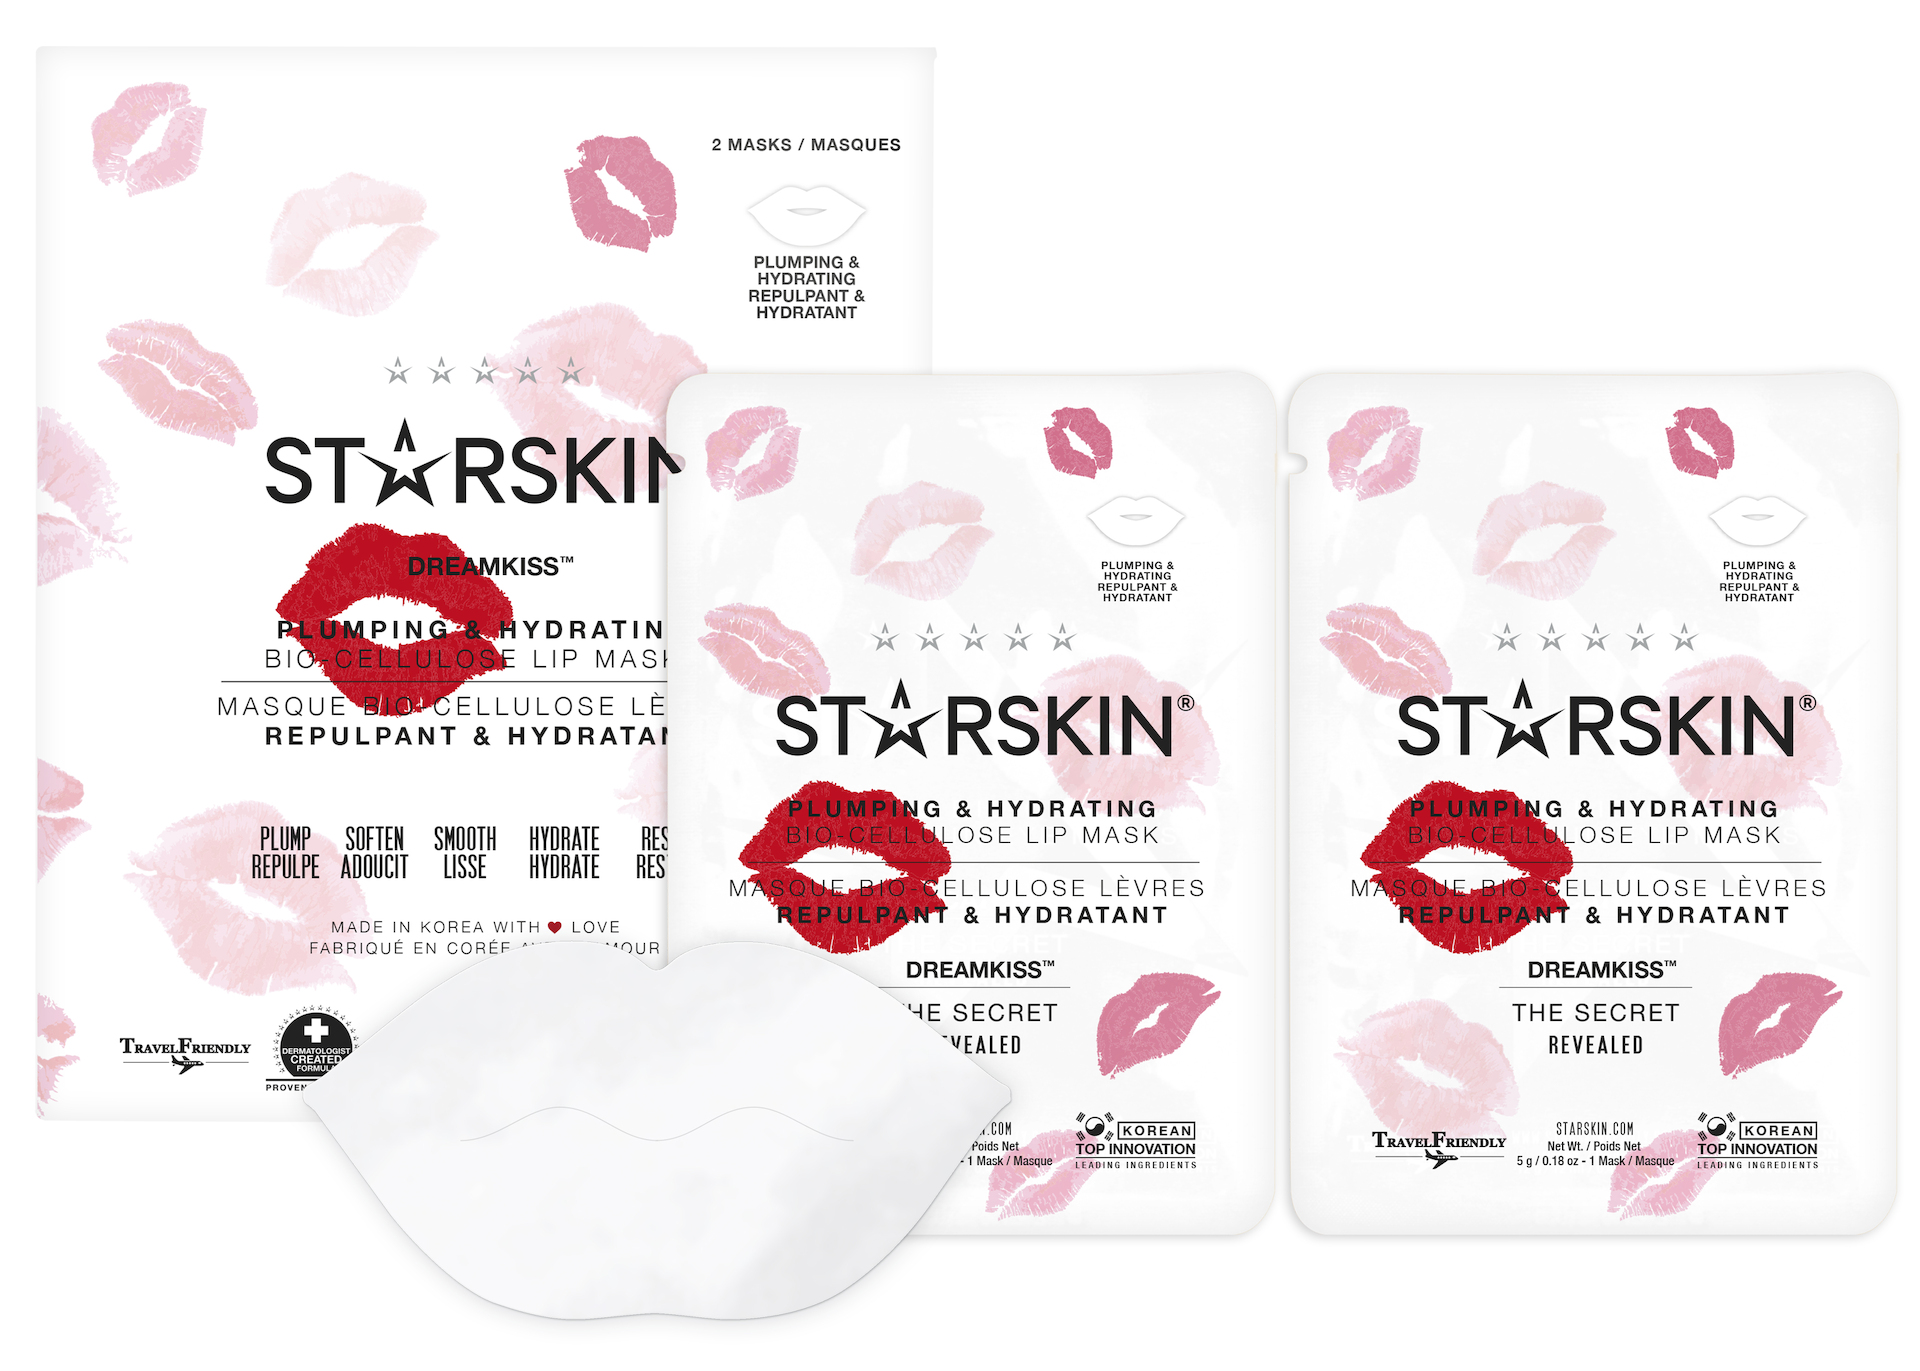 Dreamkiss Coconut Bio Cellulose Second Skin Lip mask